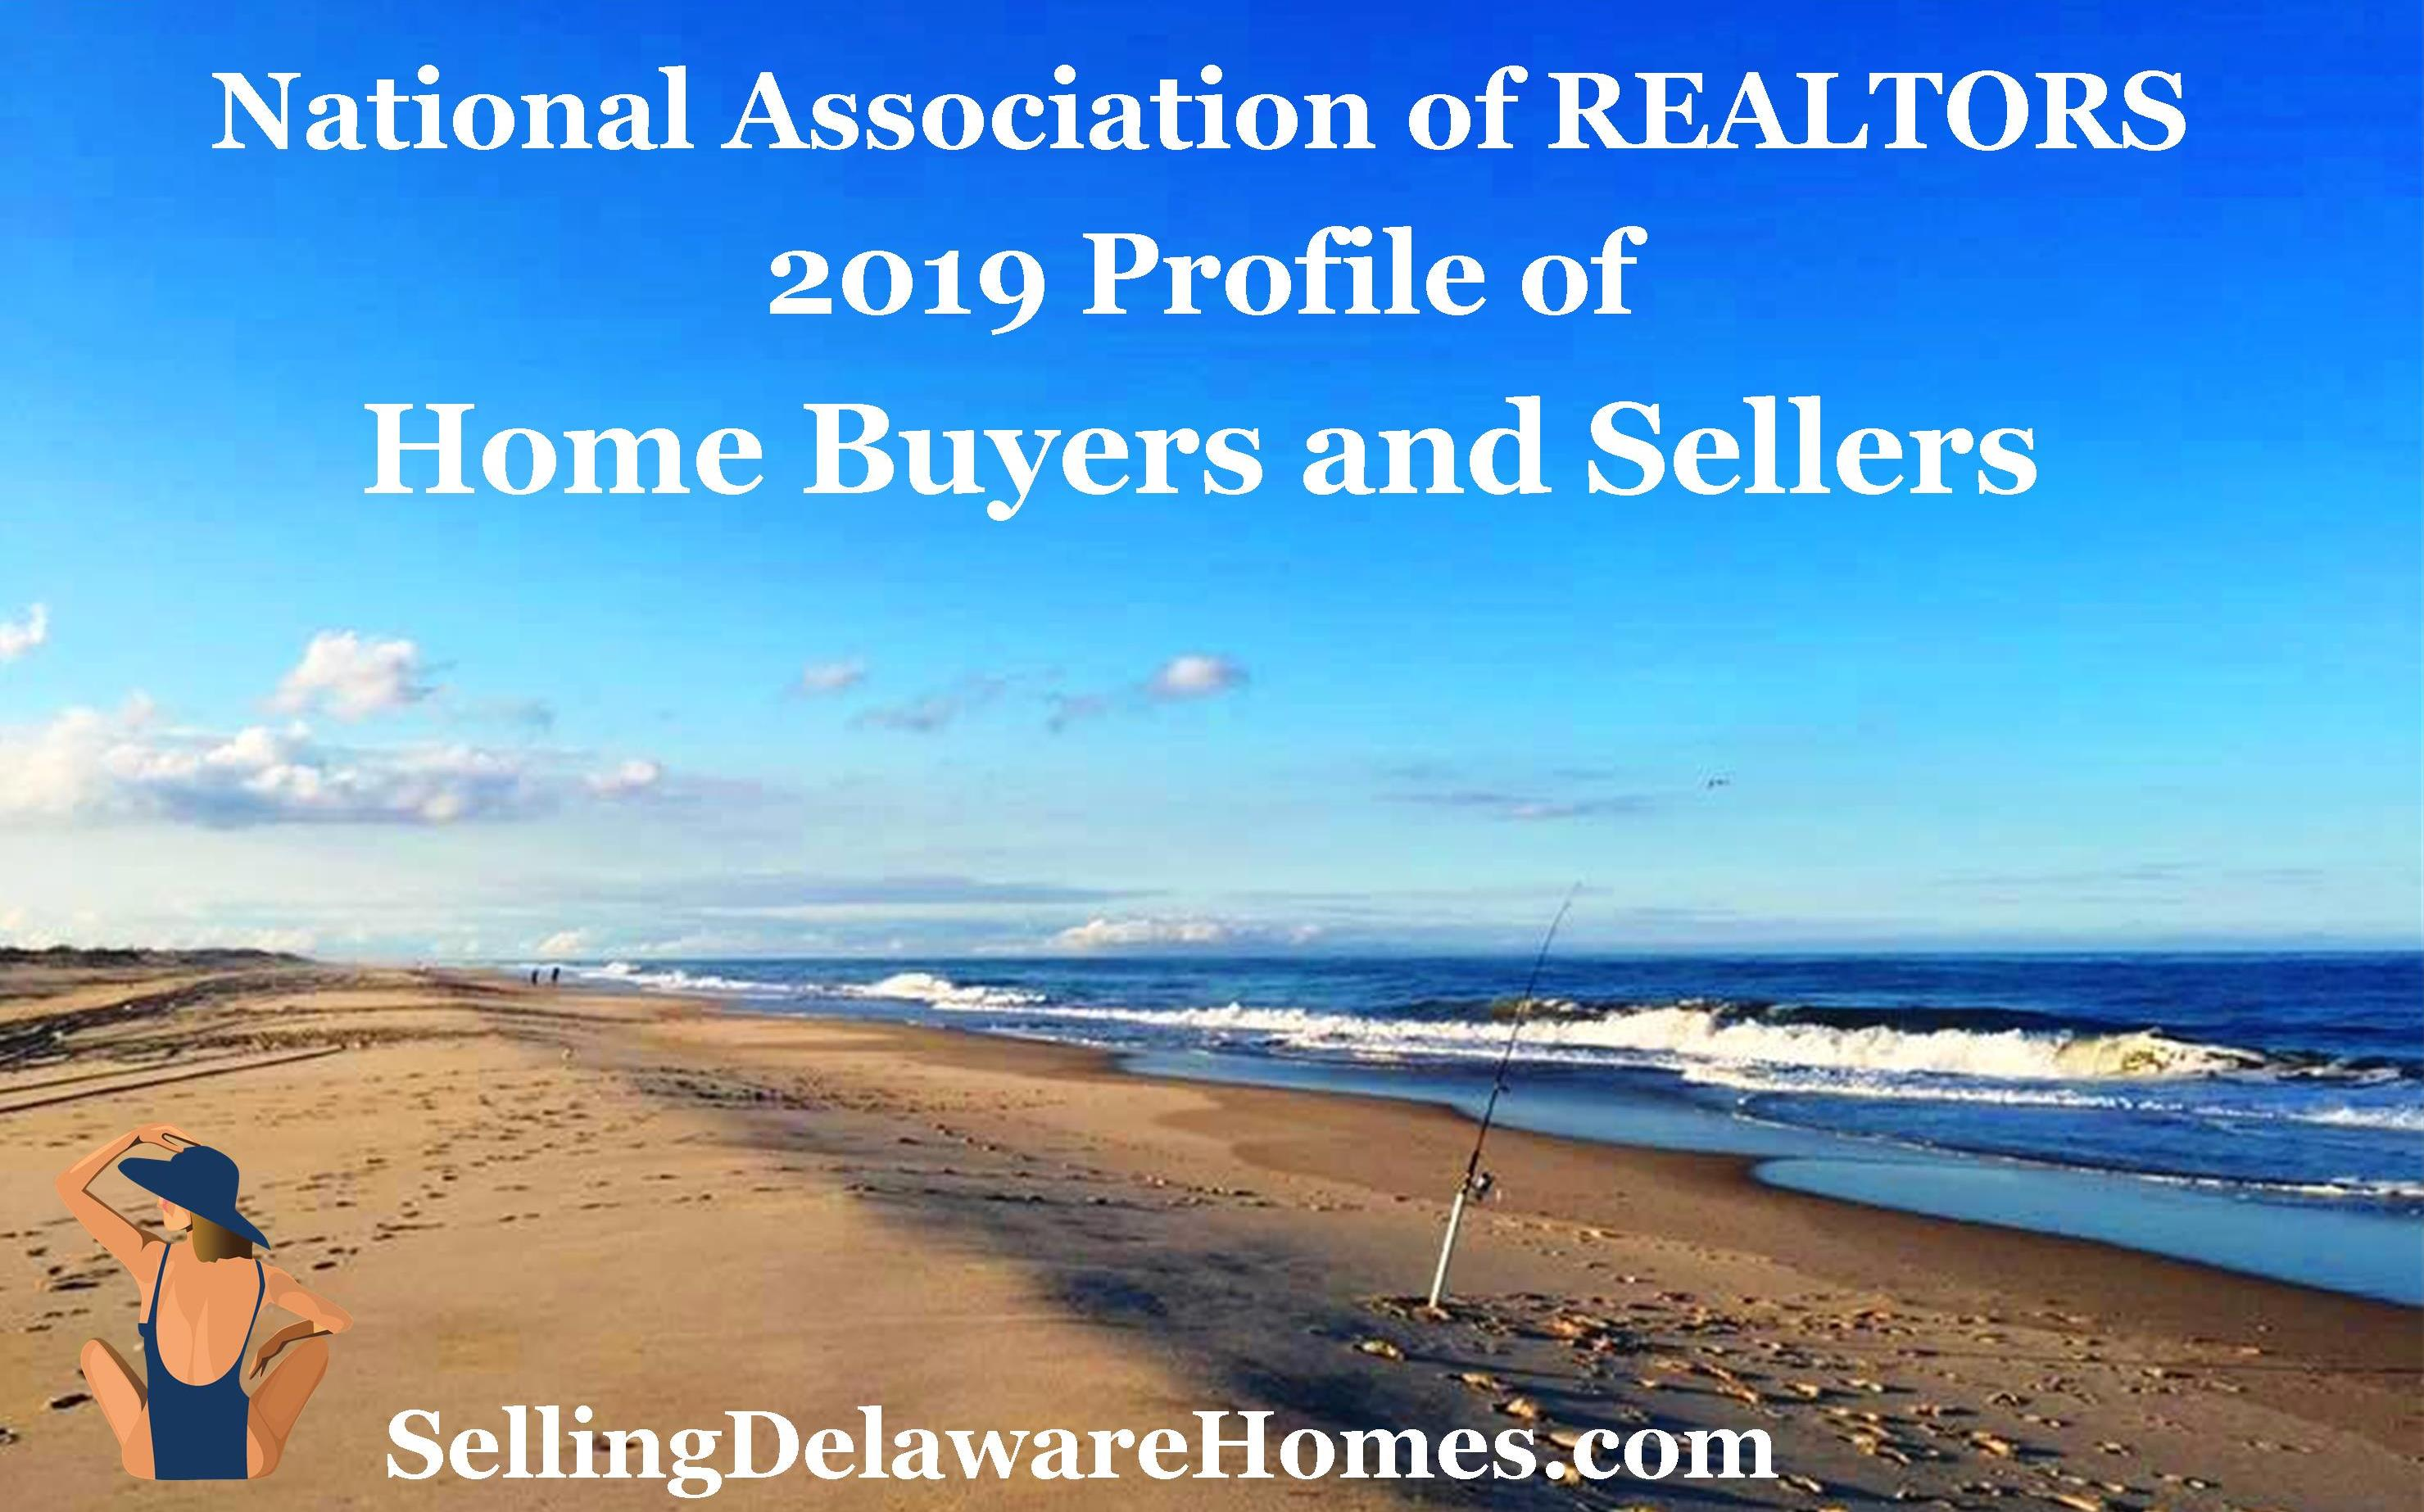 2019 Profile of Home Buyers and Sellers